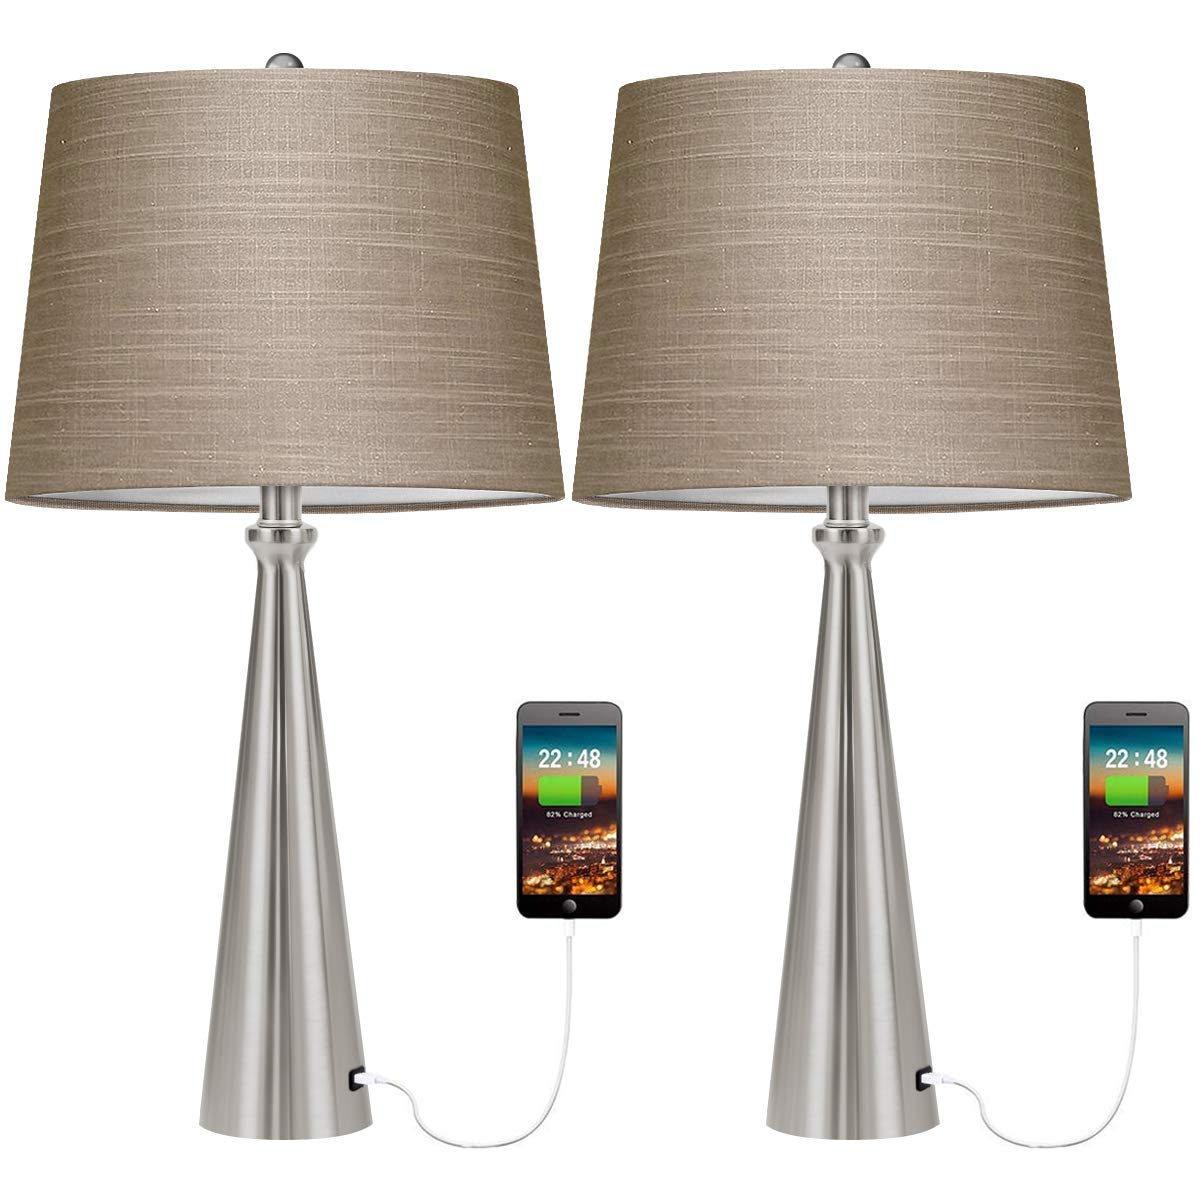 Oneach Modern USB Table Lamp Set of 2 for Living Room Bedroom Bedside Nightstand Lamps Fabric Shade Accent Light Silver